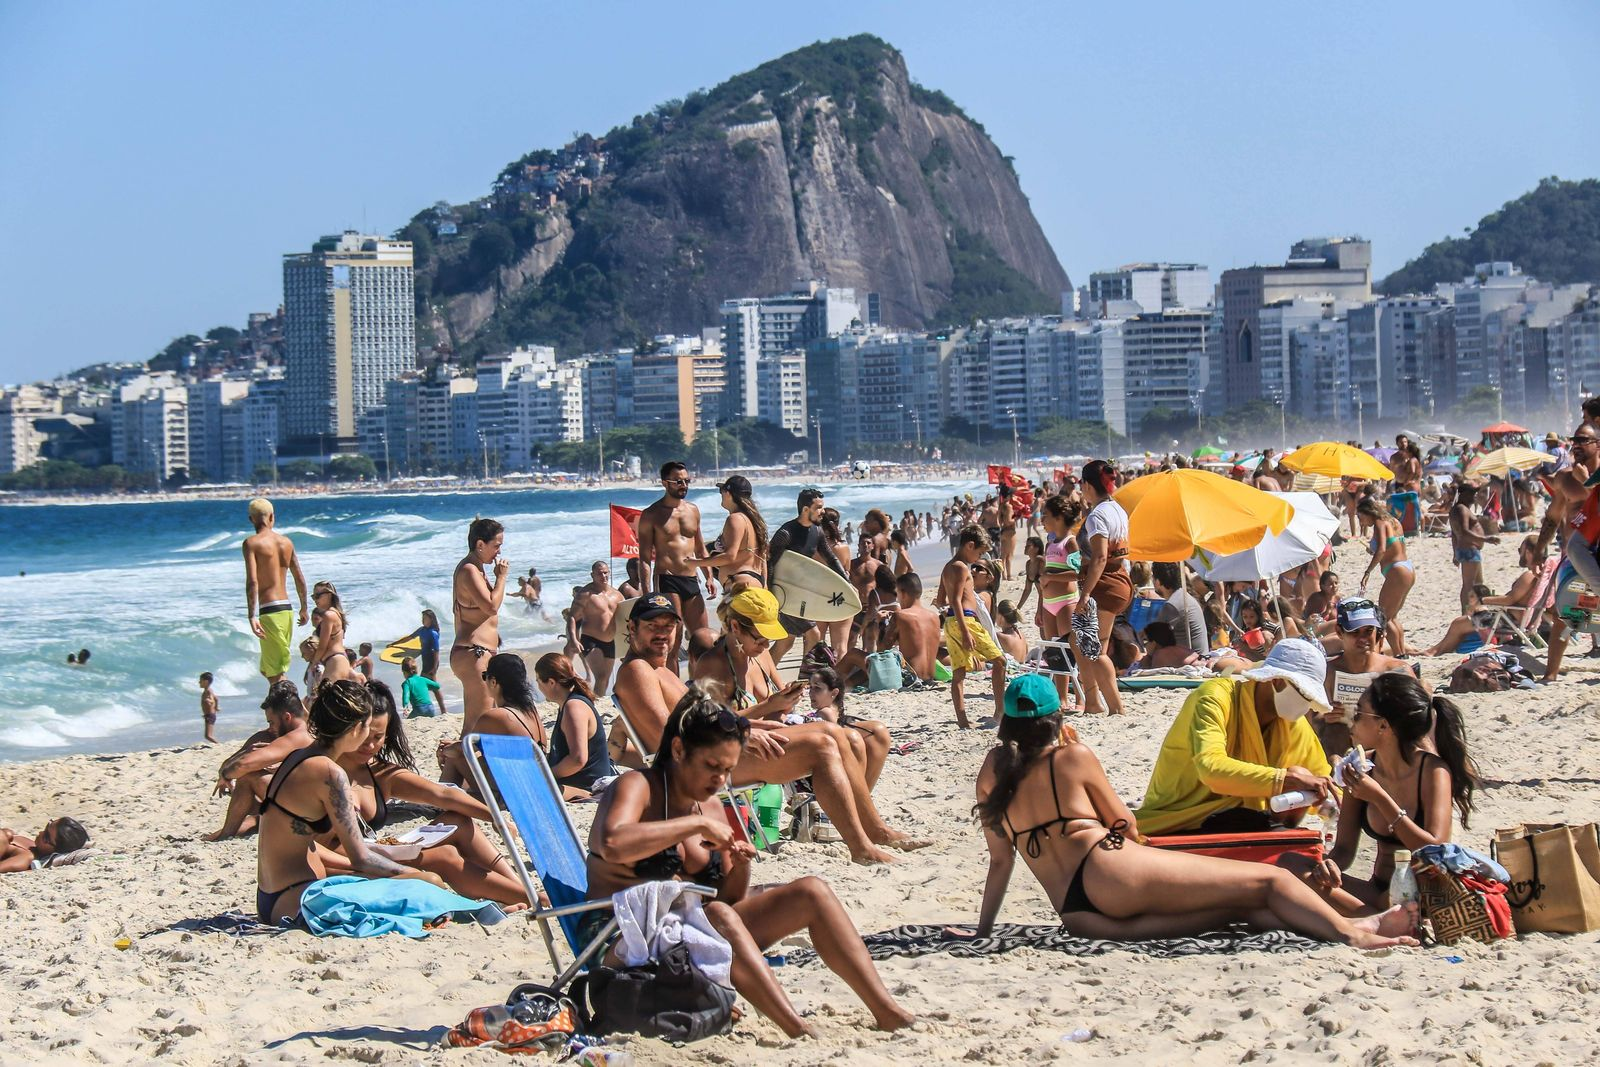 August 29, 2020: BRAZIL. RIO DE JANEIRO. August 29, 2020. FLEXIBILIZATION. Movement in Praia do Leme, south zone at a t